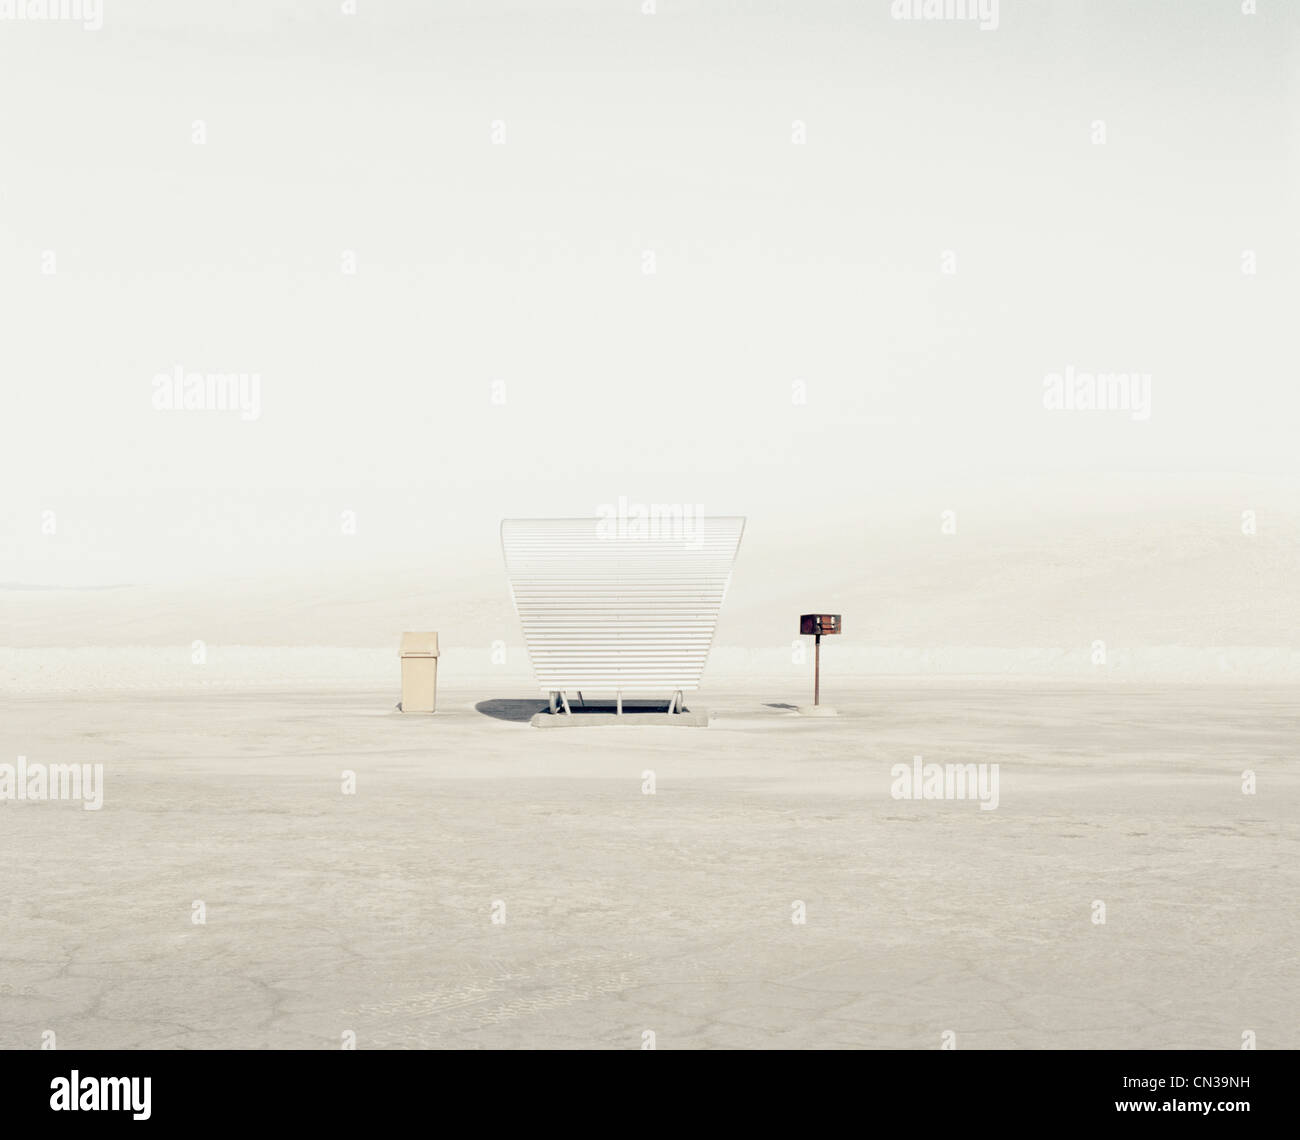 Shelter, White Sands National Park, New Mexico, USA - Stock Image